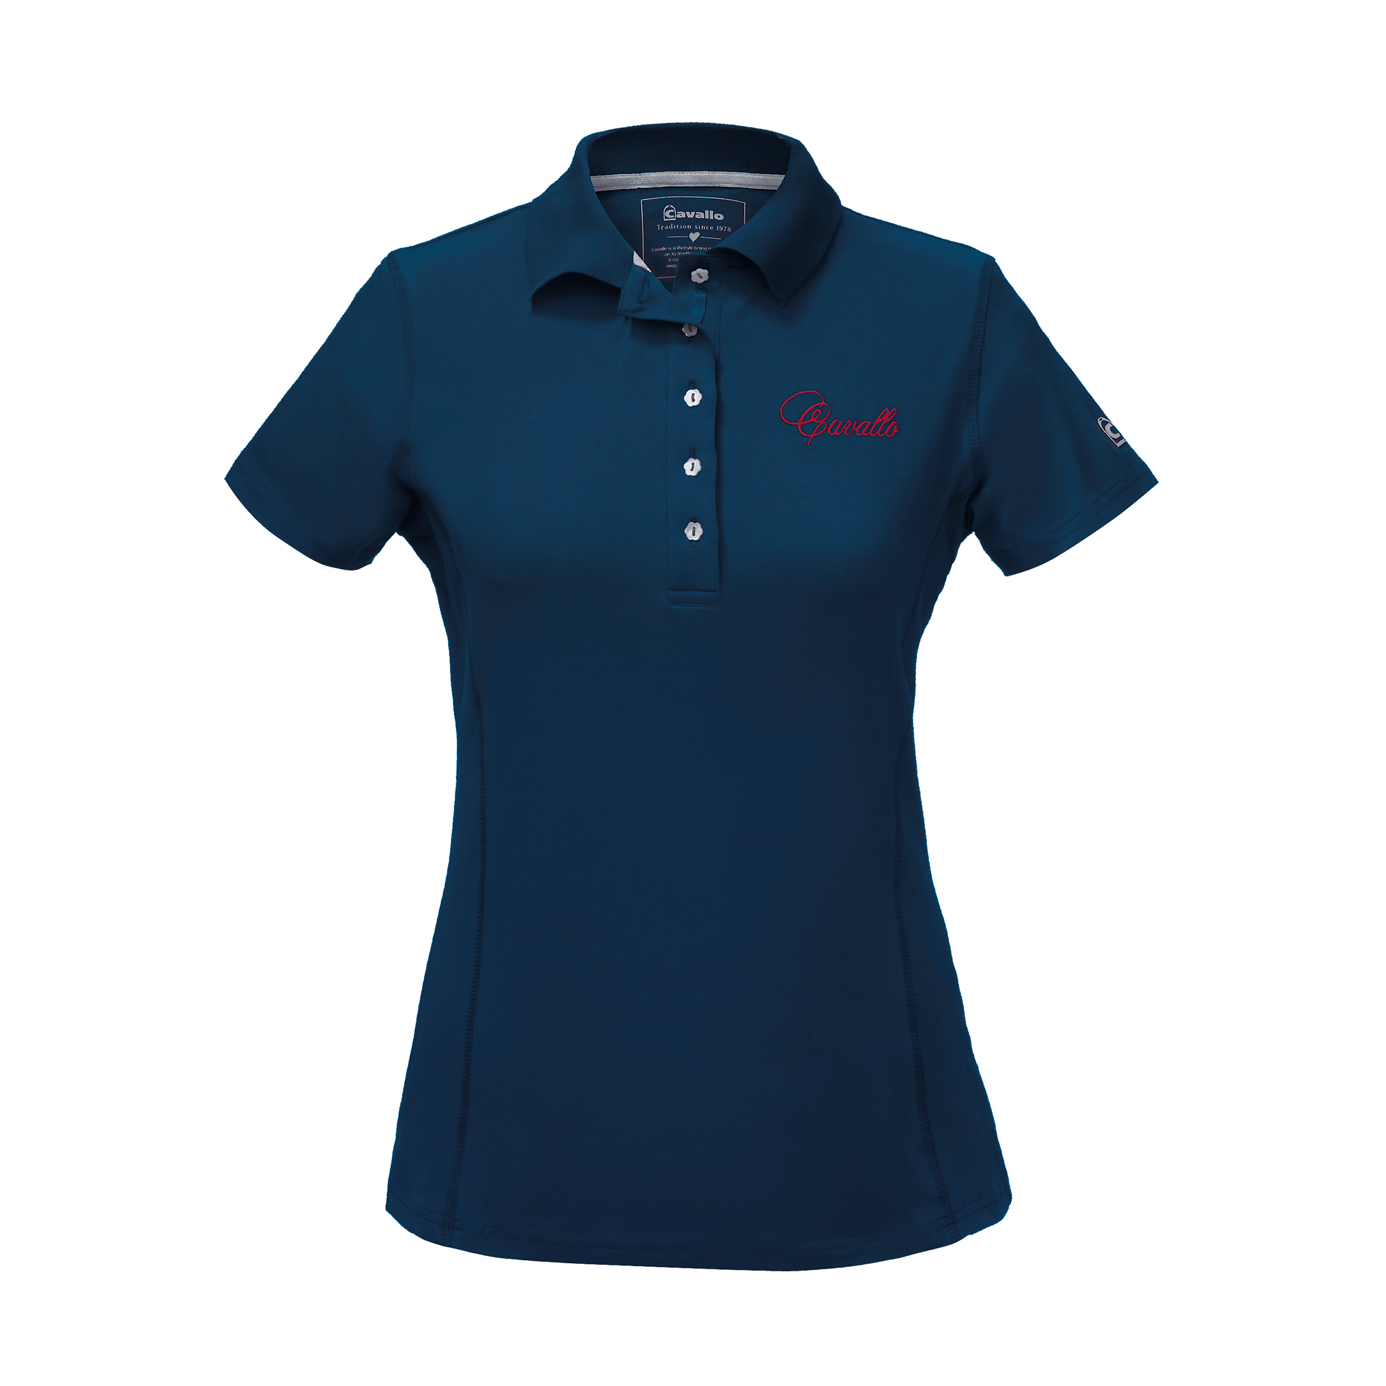 Cavallo Melissa Dark Blue Ladies Equestrian Polo Shirt